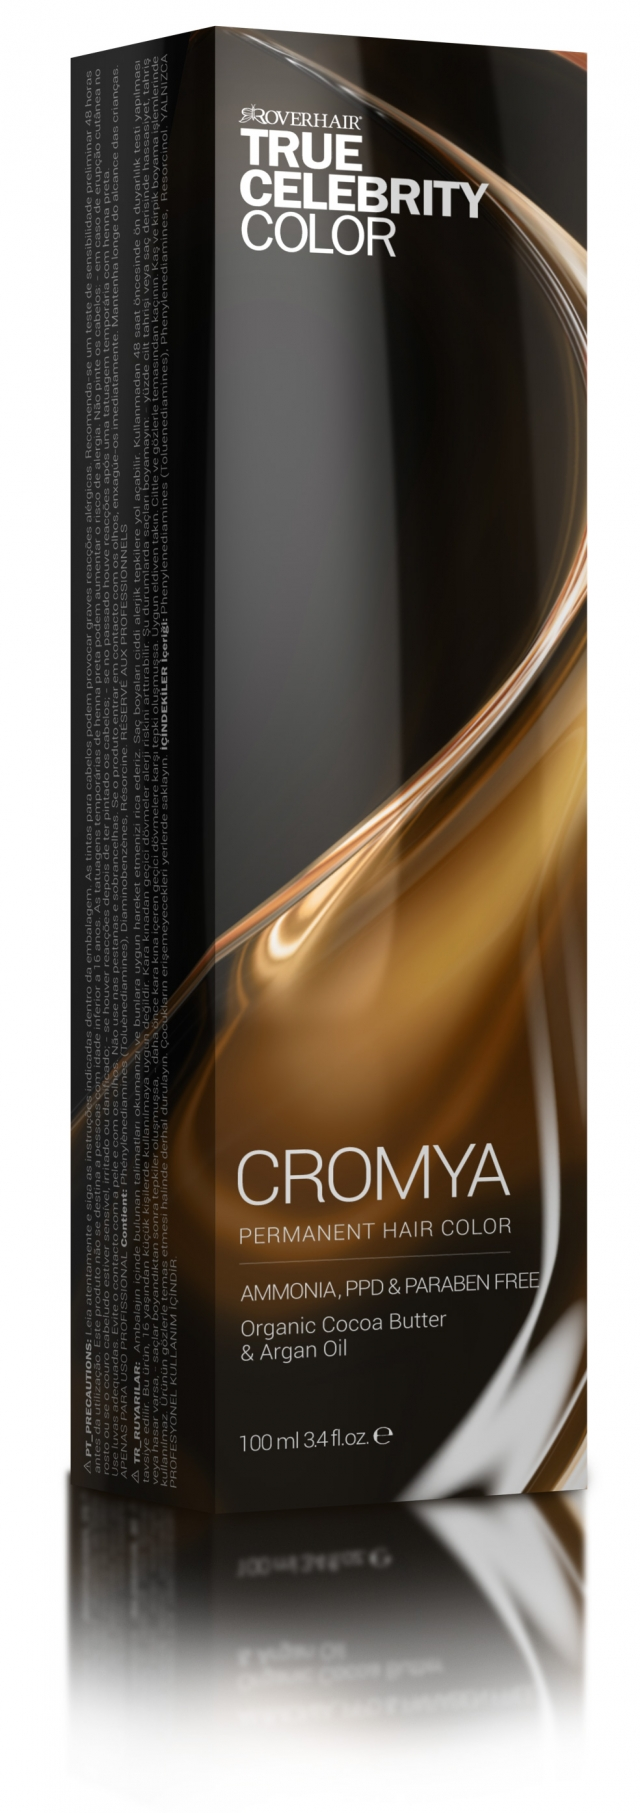 Cromya Permanent Hair Color Image